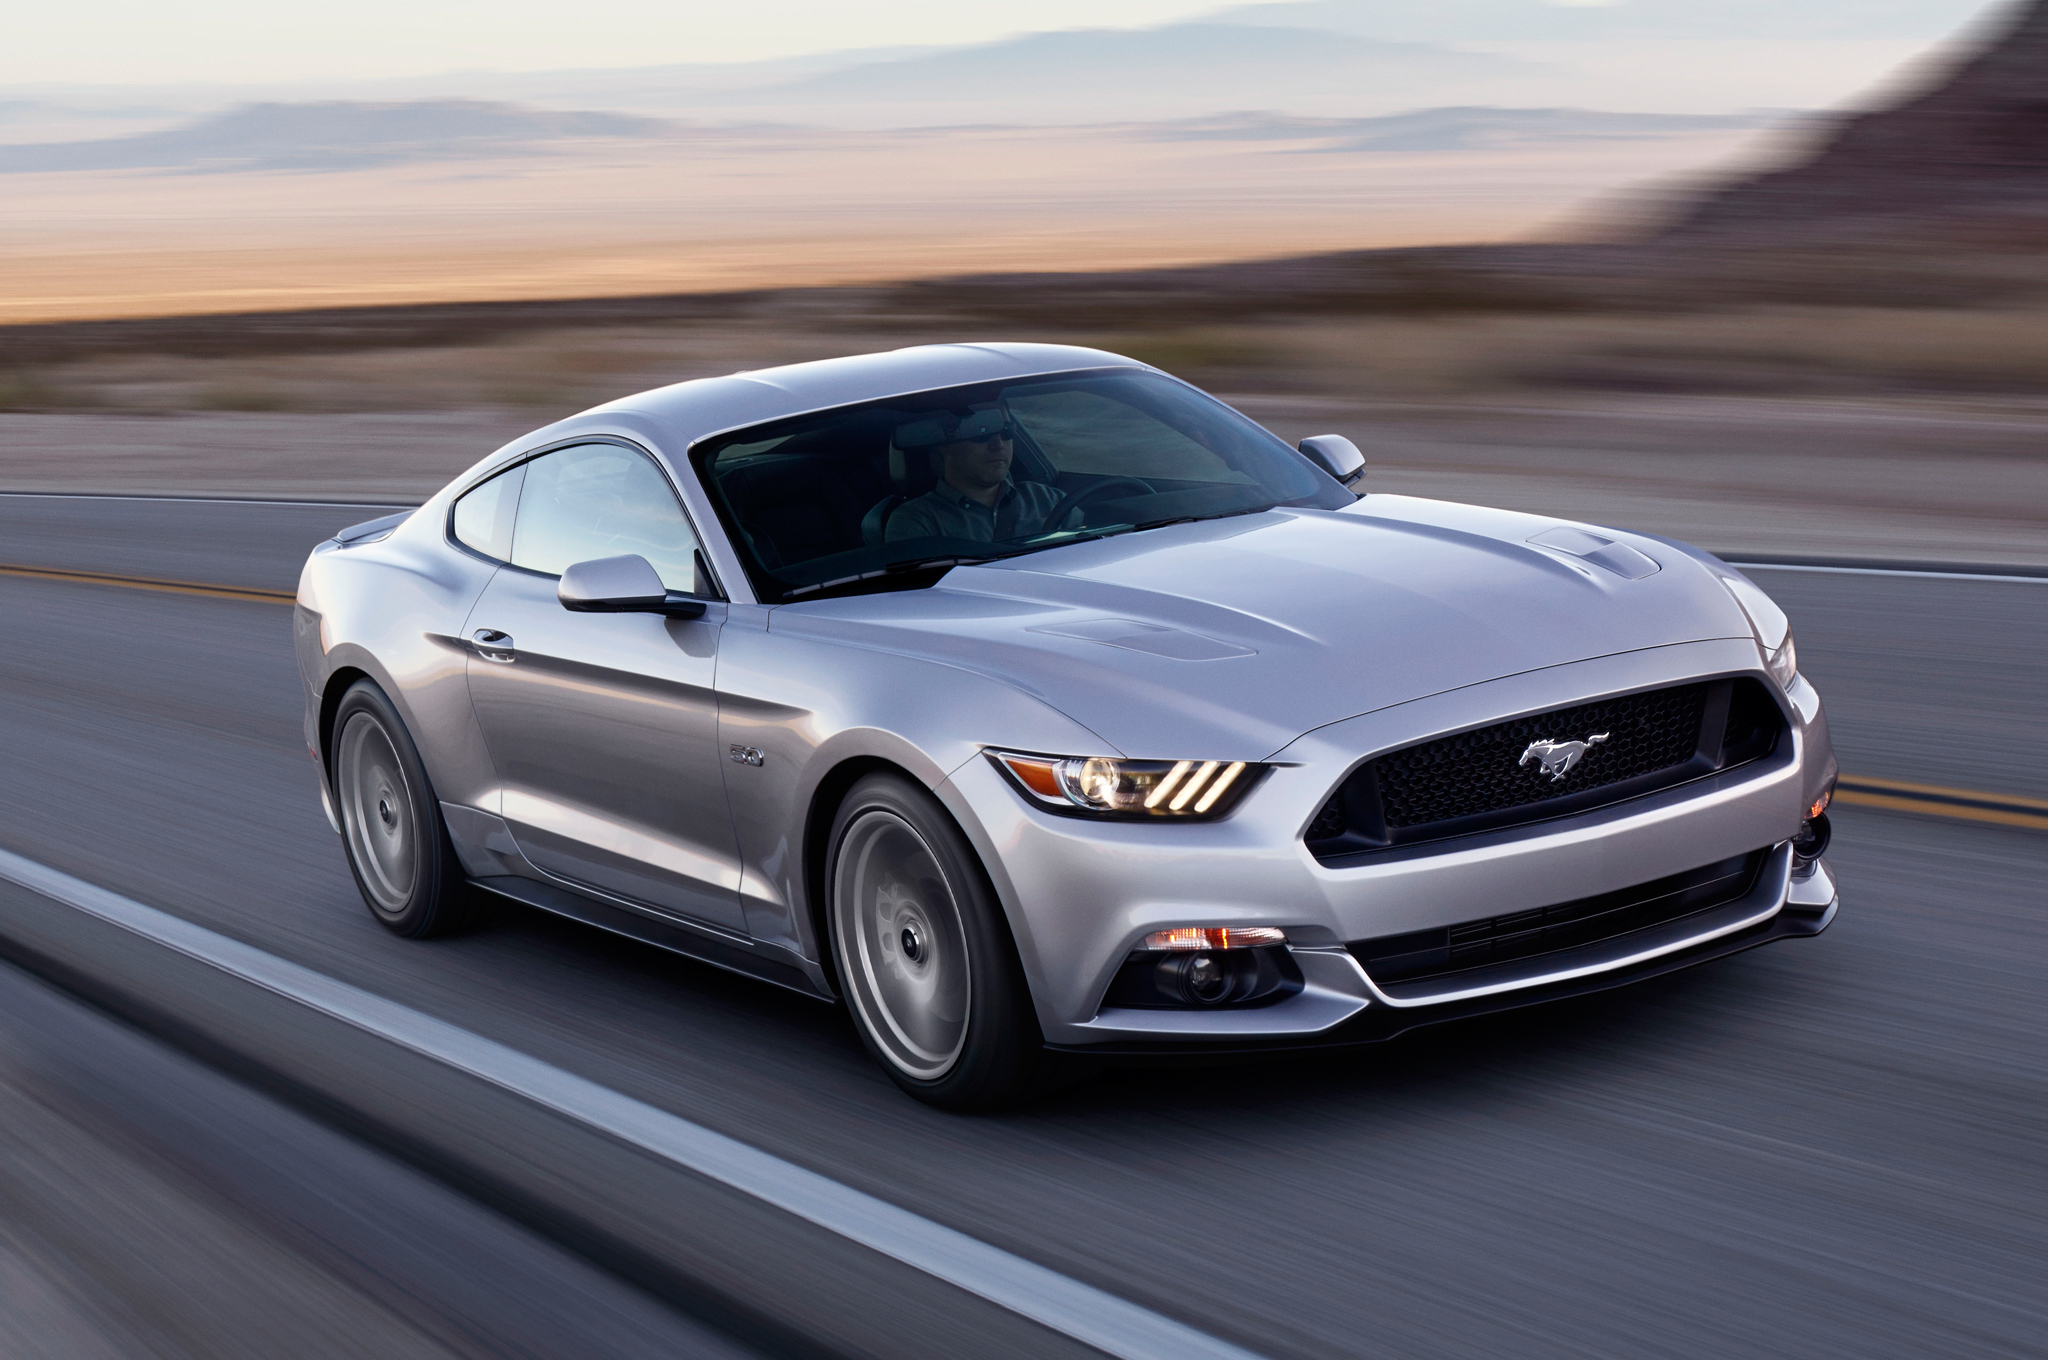 Designers discuss 2015 ford mustang styling w video